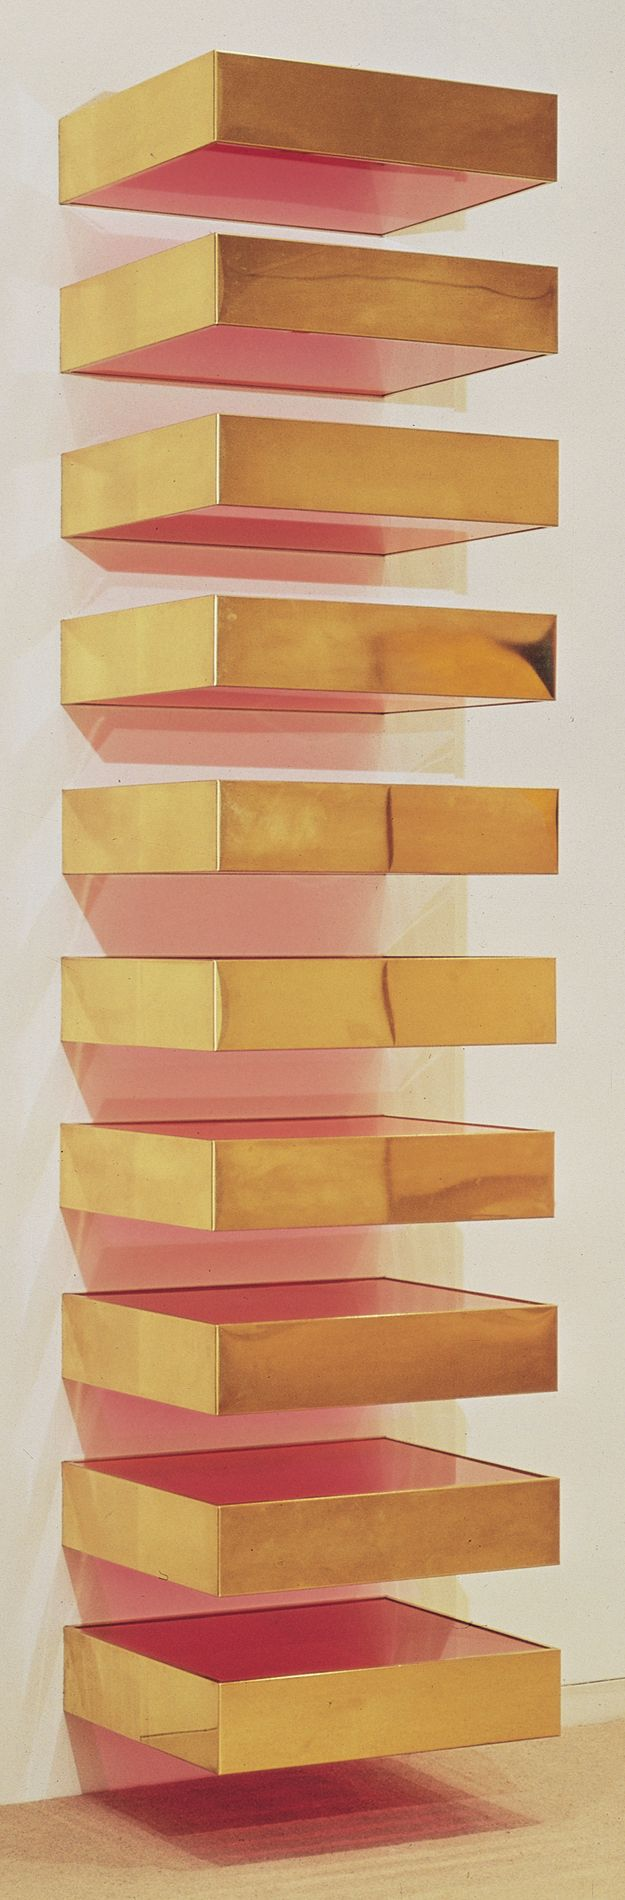 This is a sculpture/installation but I like the idea of this as shelves. (donald judd, untitled, 1968)